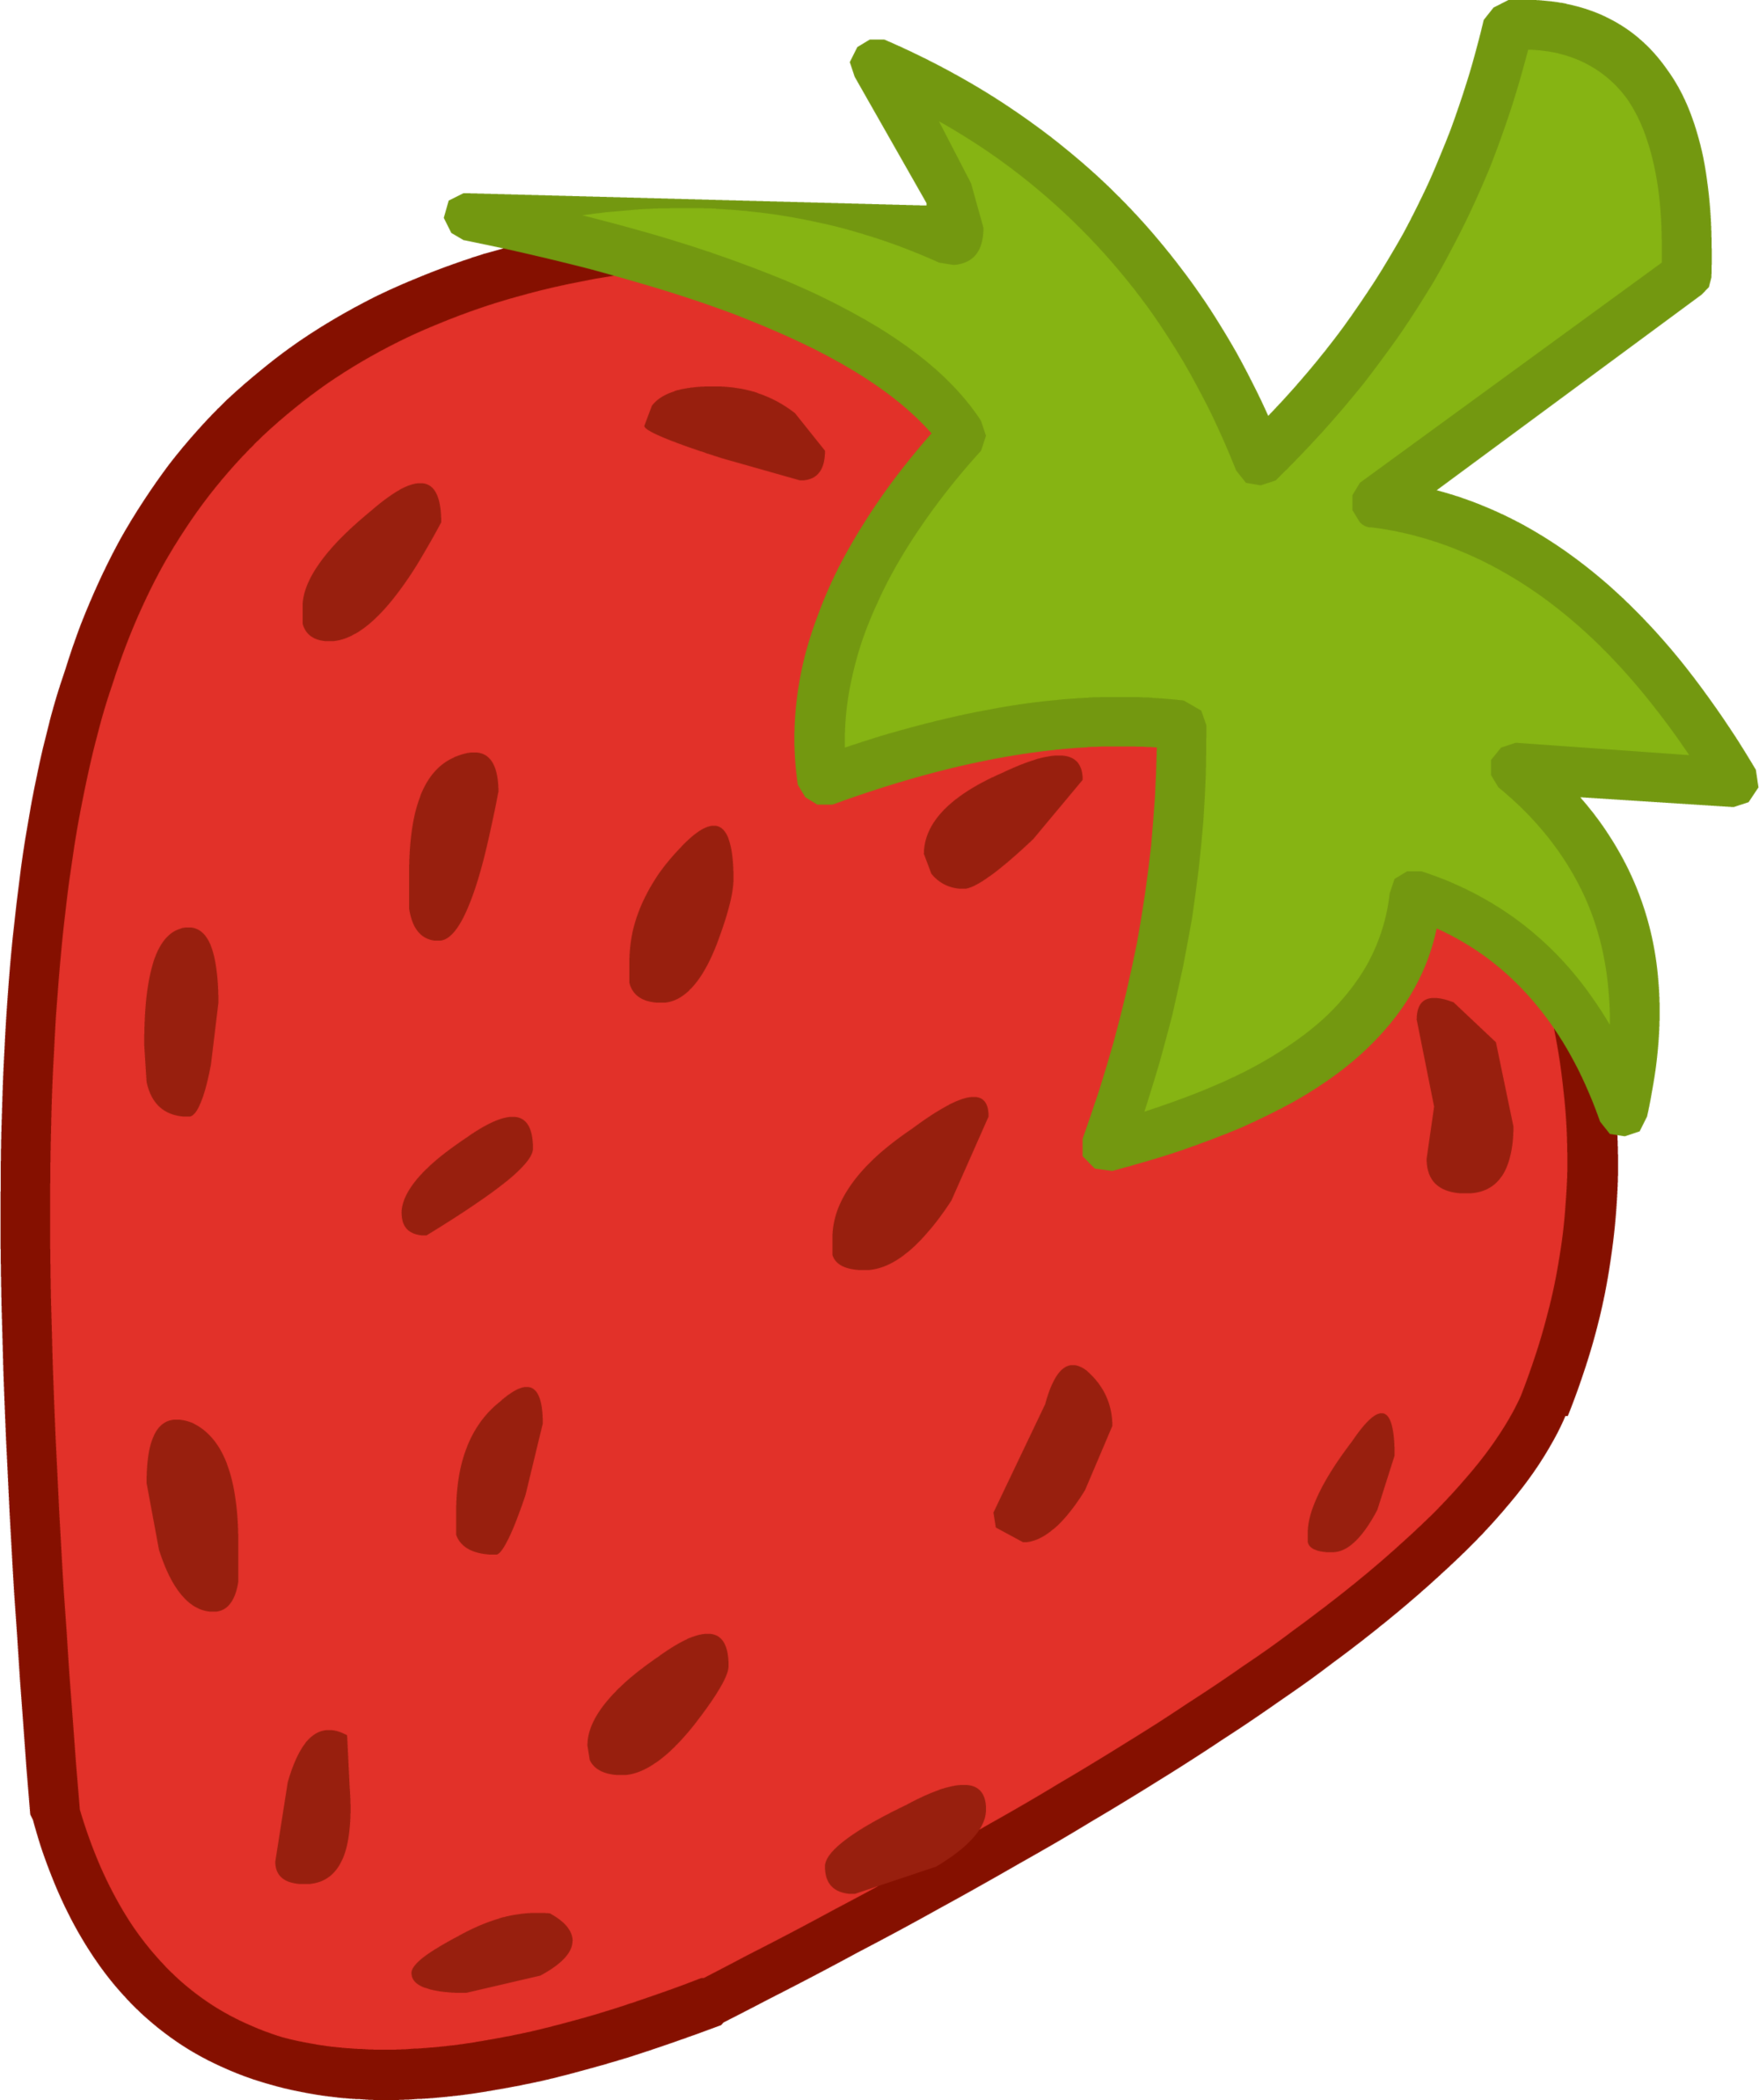 banner download transparent strawberry animated #106724365